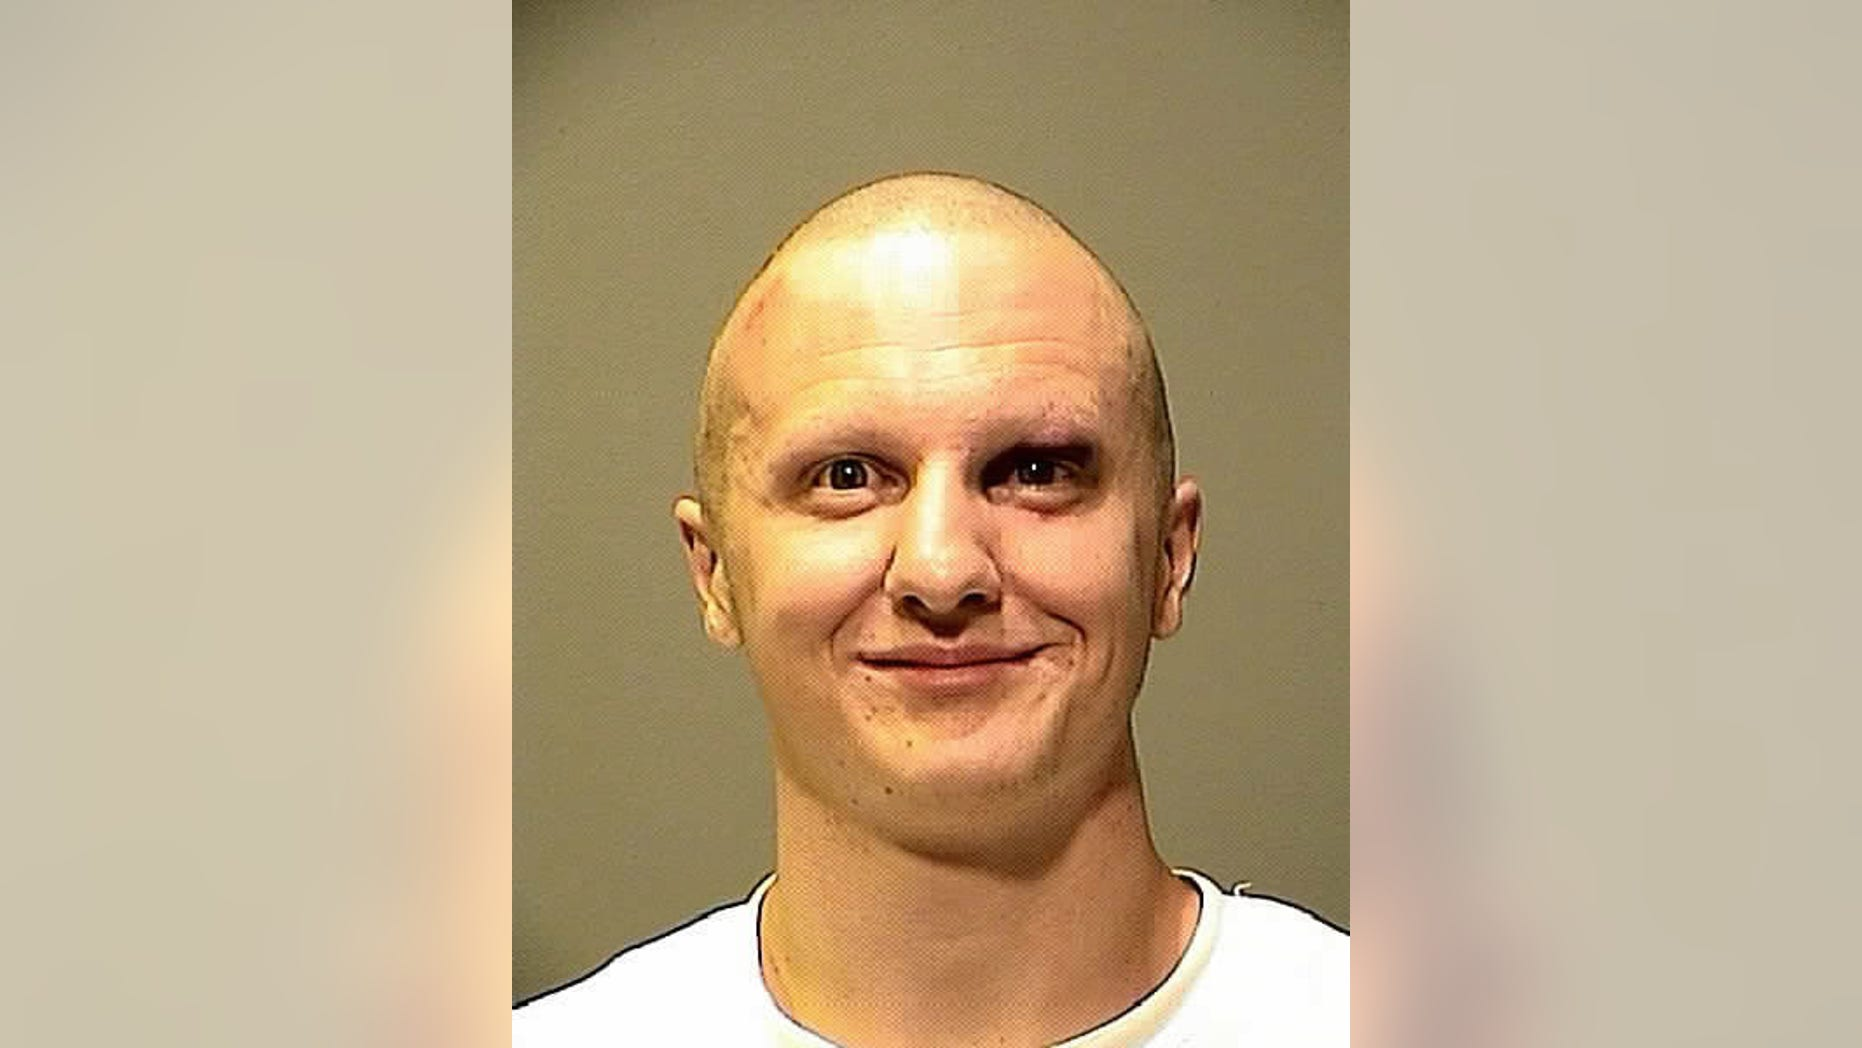 Jailed Arizona Gunman Jared Loughner Reportedly Showing 'No Remorse